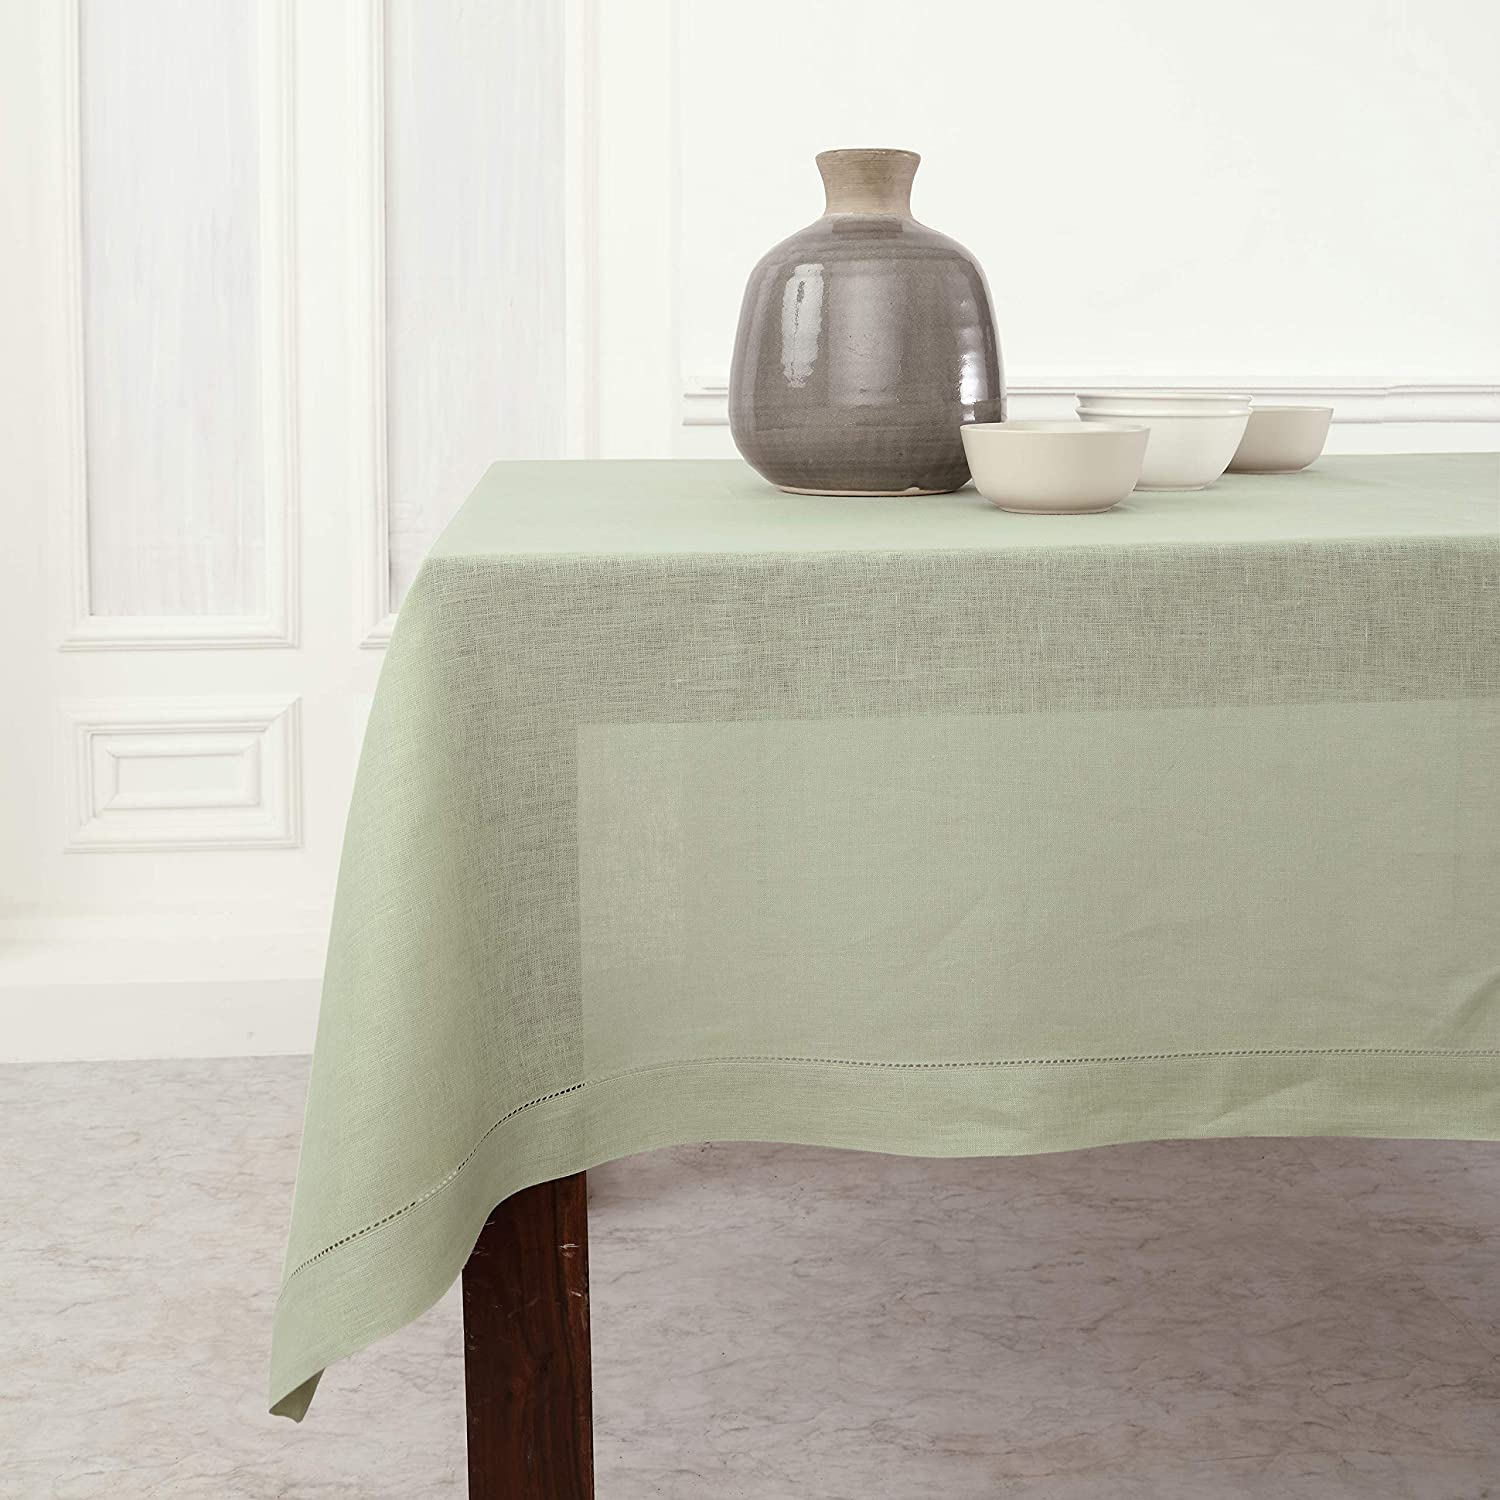 Solino Home Classic Hemstitch Linen Tablecloth Max 46% OFF Outlet SALE Inch x 108 - 60